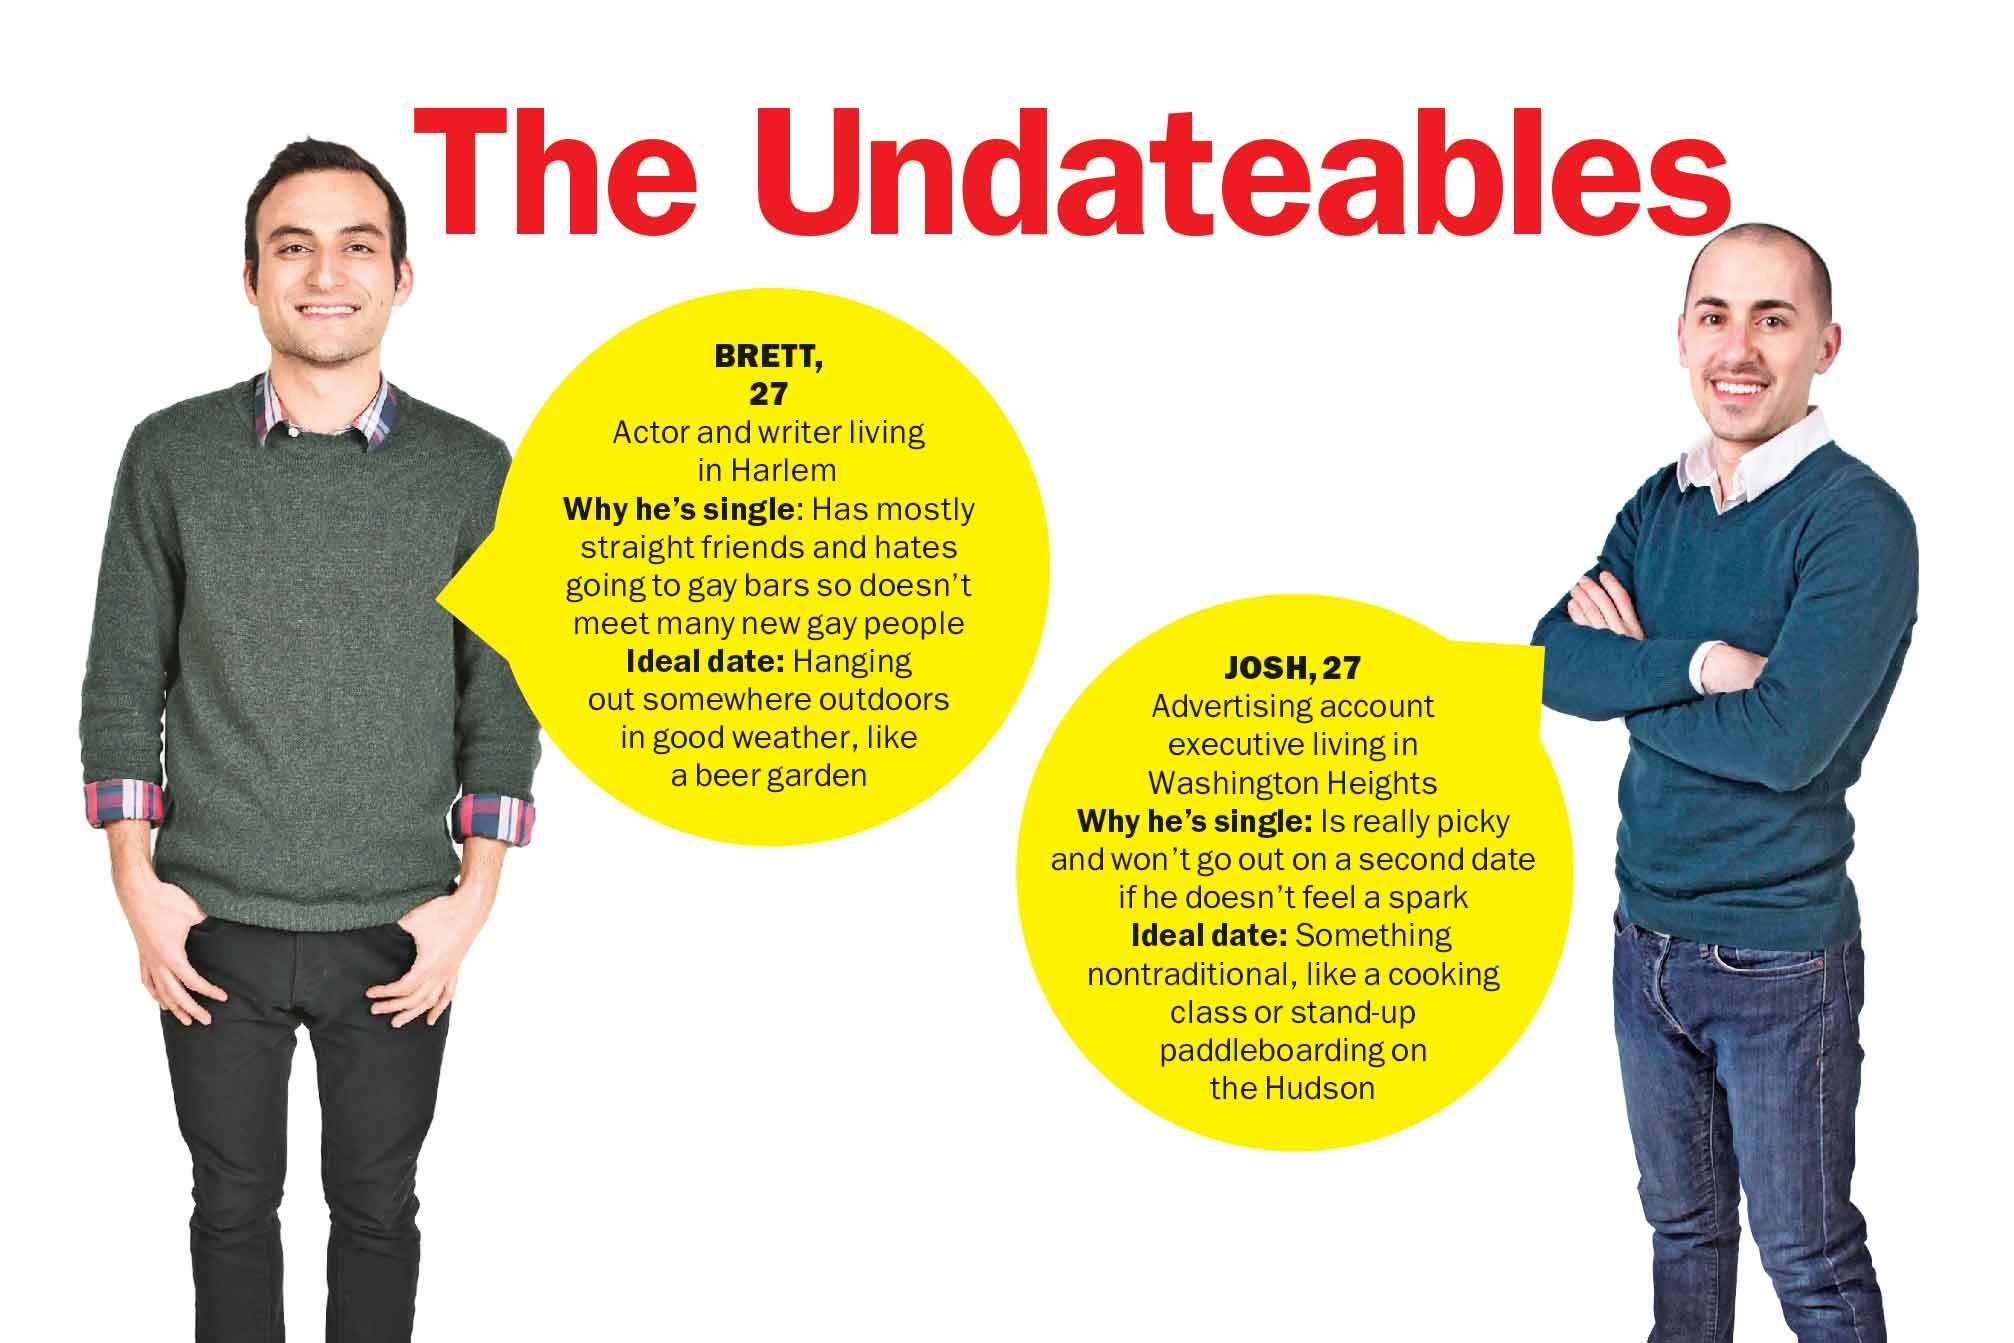 Meet the Undateables: Brett and Josh